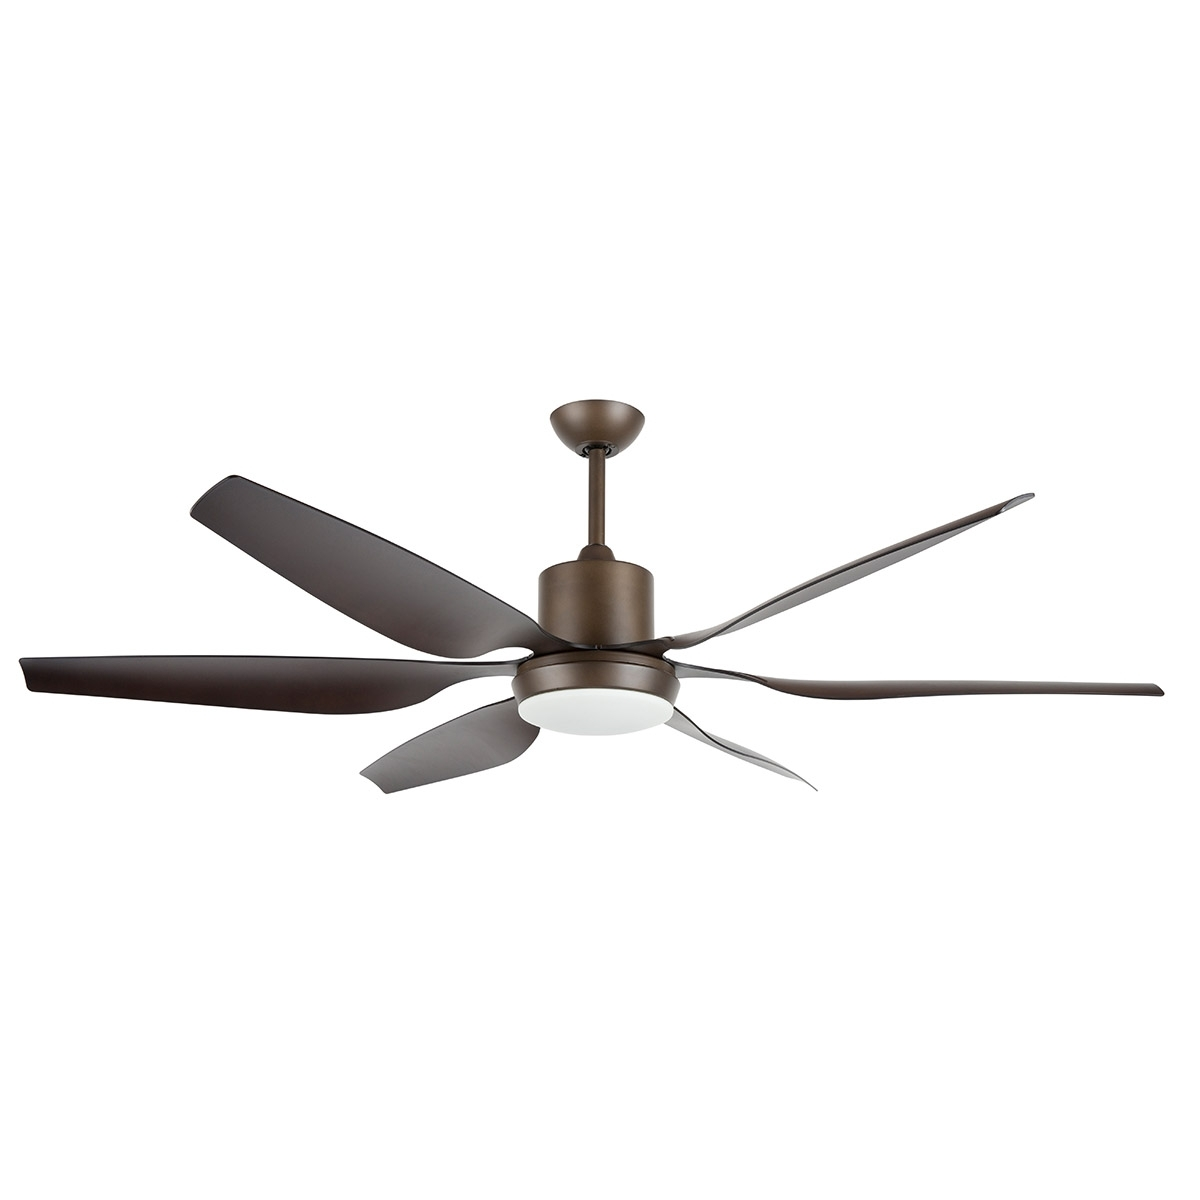 Fashionable 20 Inch Outdoor Ceiling Fans With Light With Regard To Aviator 66″ Dc Ceiling Fan – Brilliant Lighting (View 16 of 20)